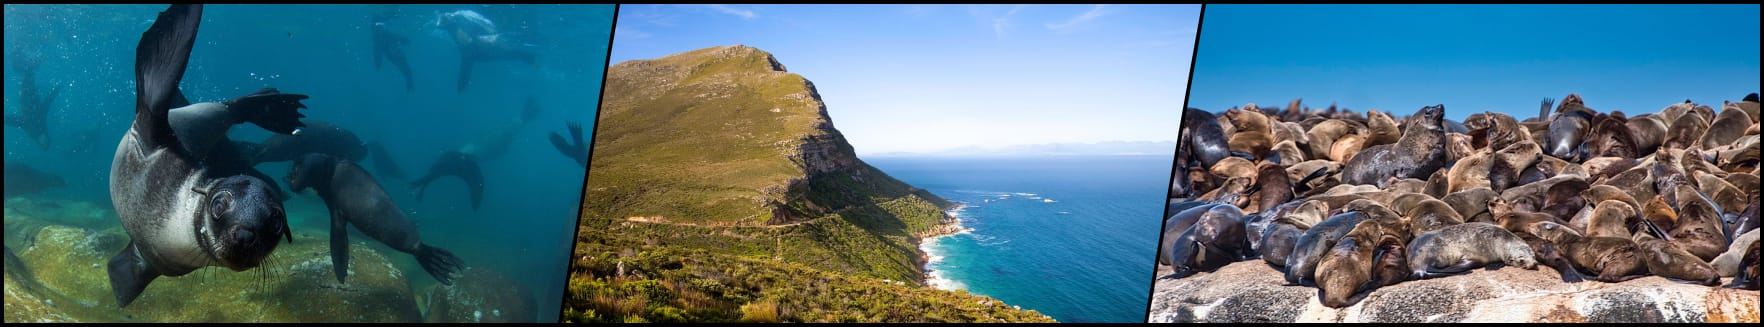 South Africa d14